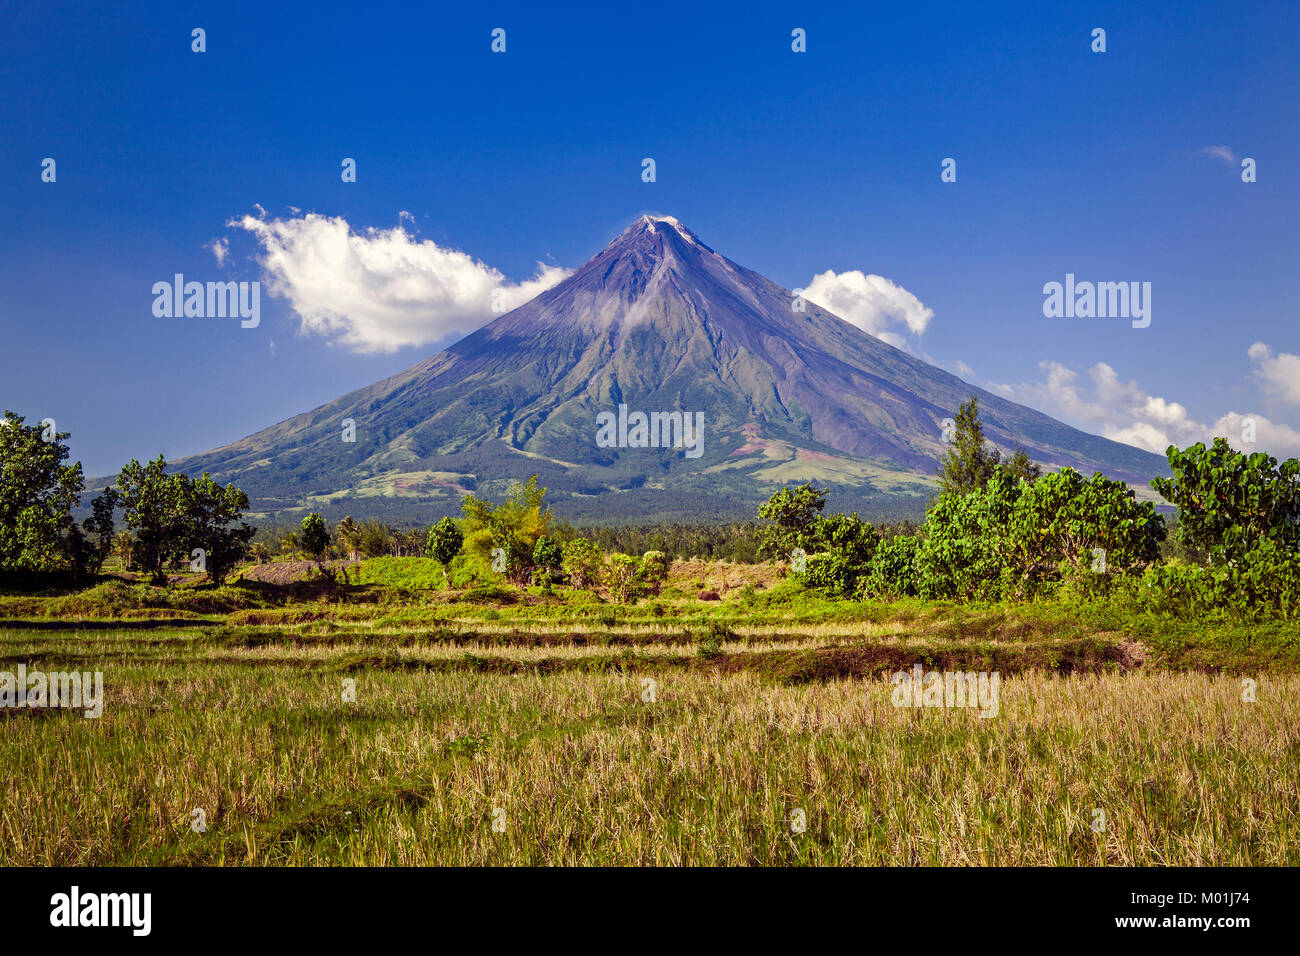 Mount Mayon Volcanois an active stratovolcano, in the province of Albay, Bicol, Philippines currently erupting and - Stock Image